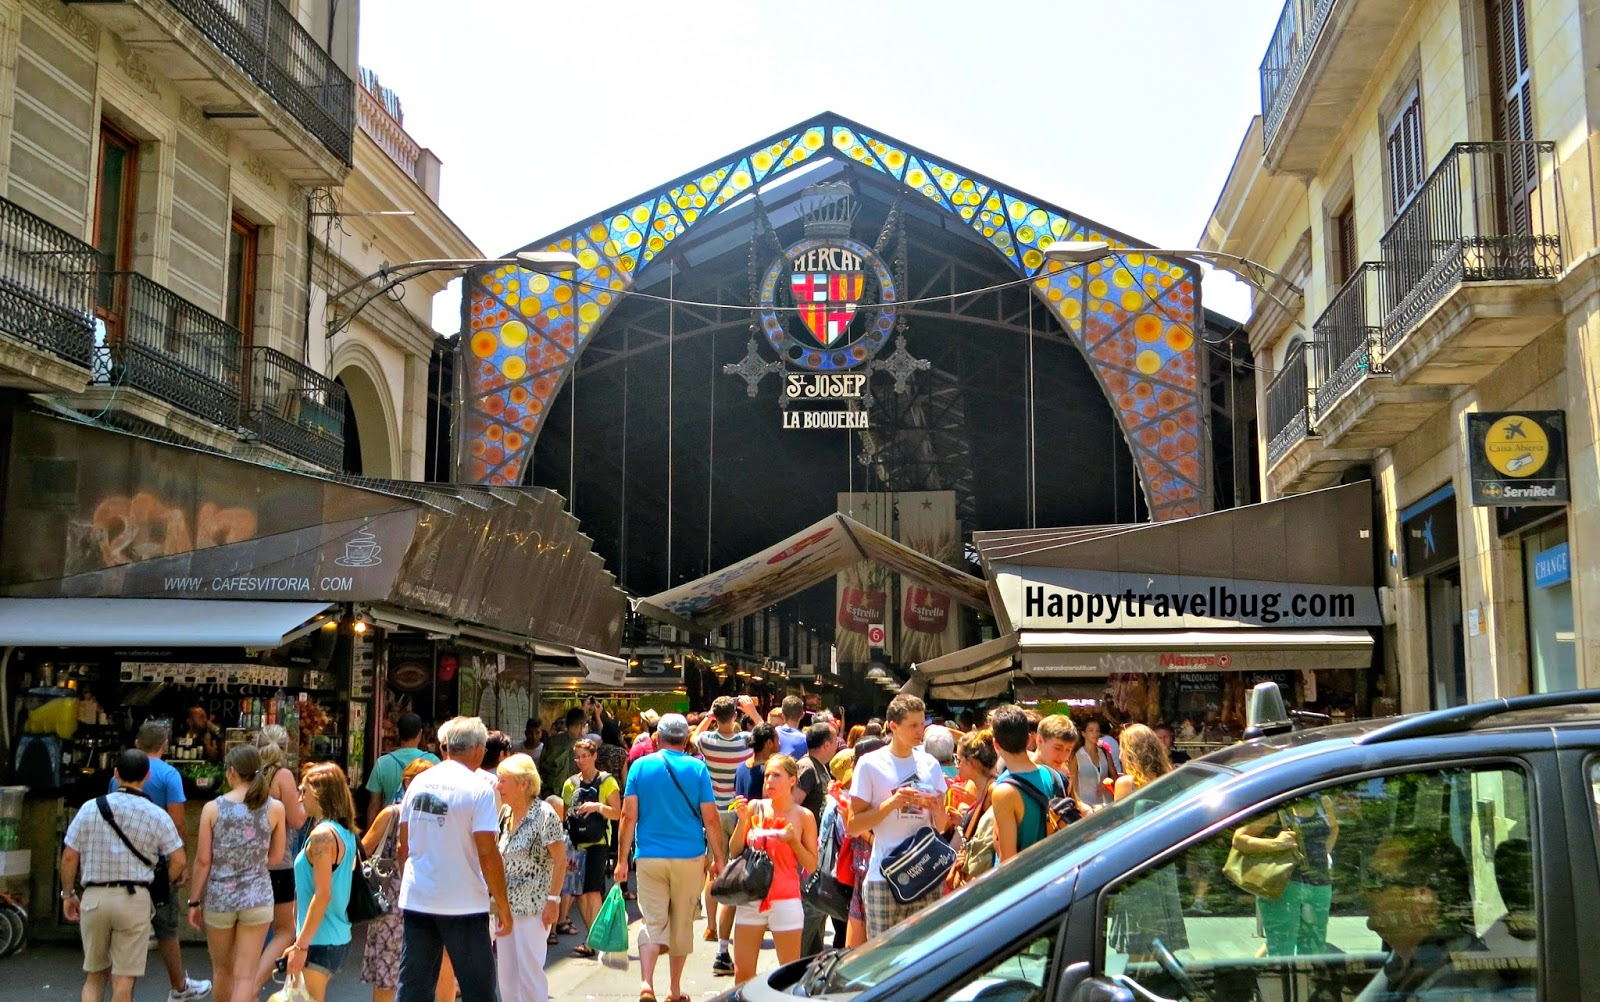 La Boqueria Market in Barcelona, Spain